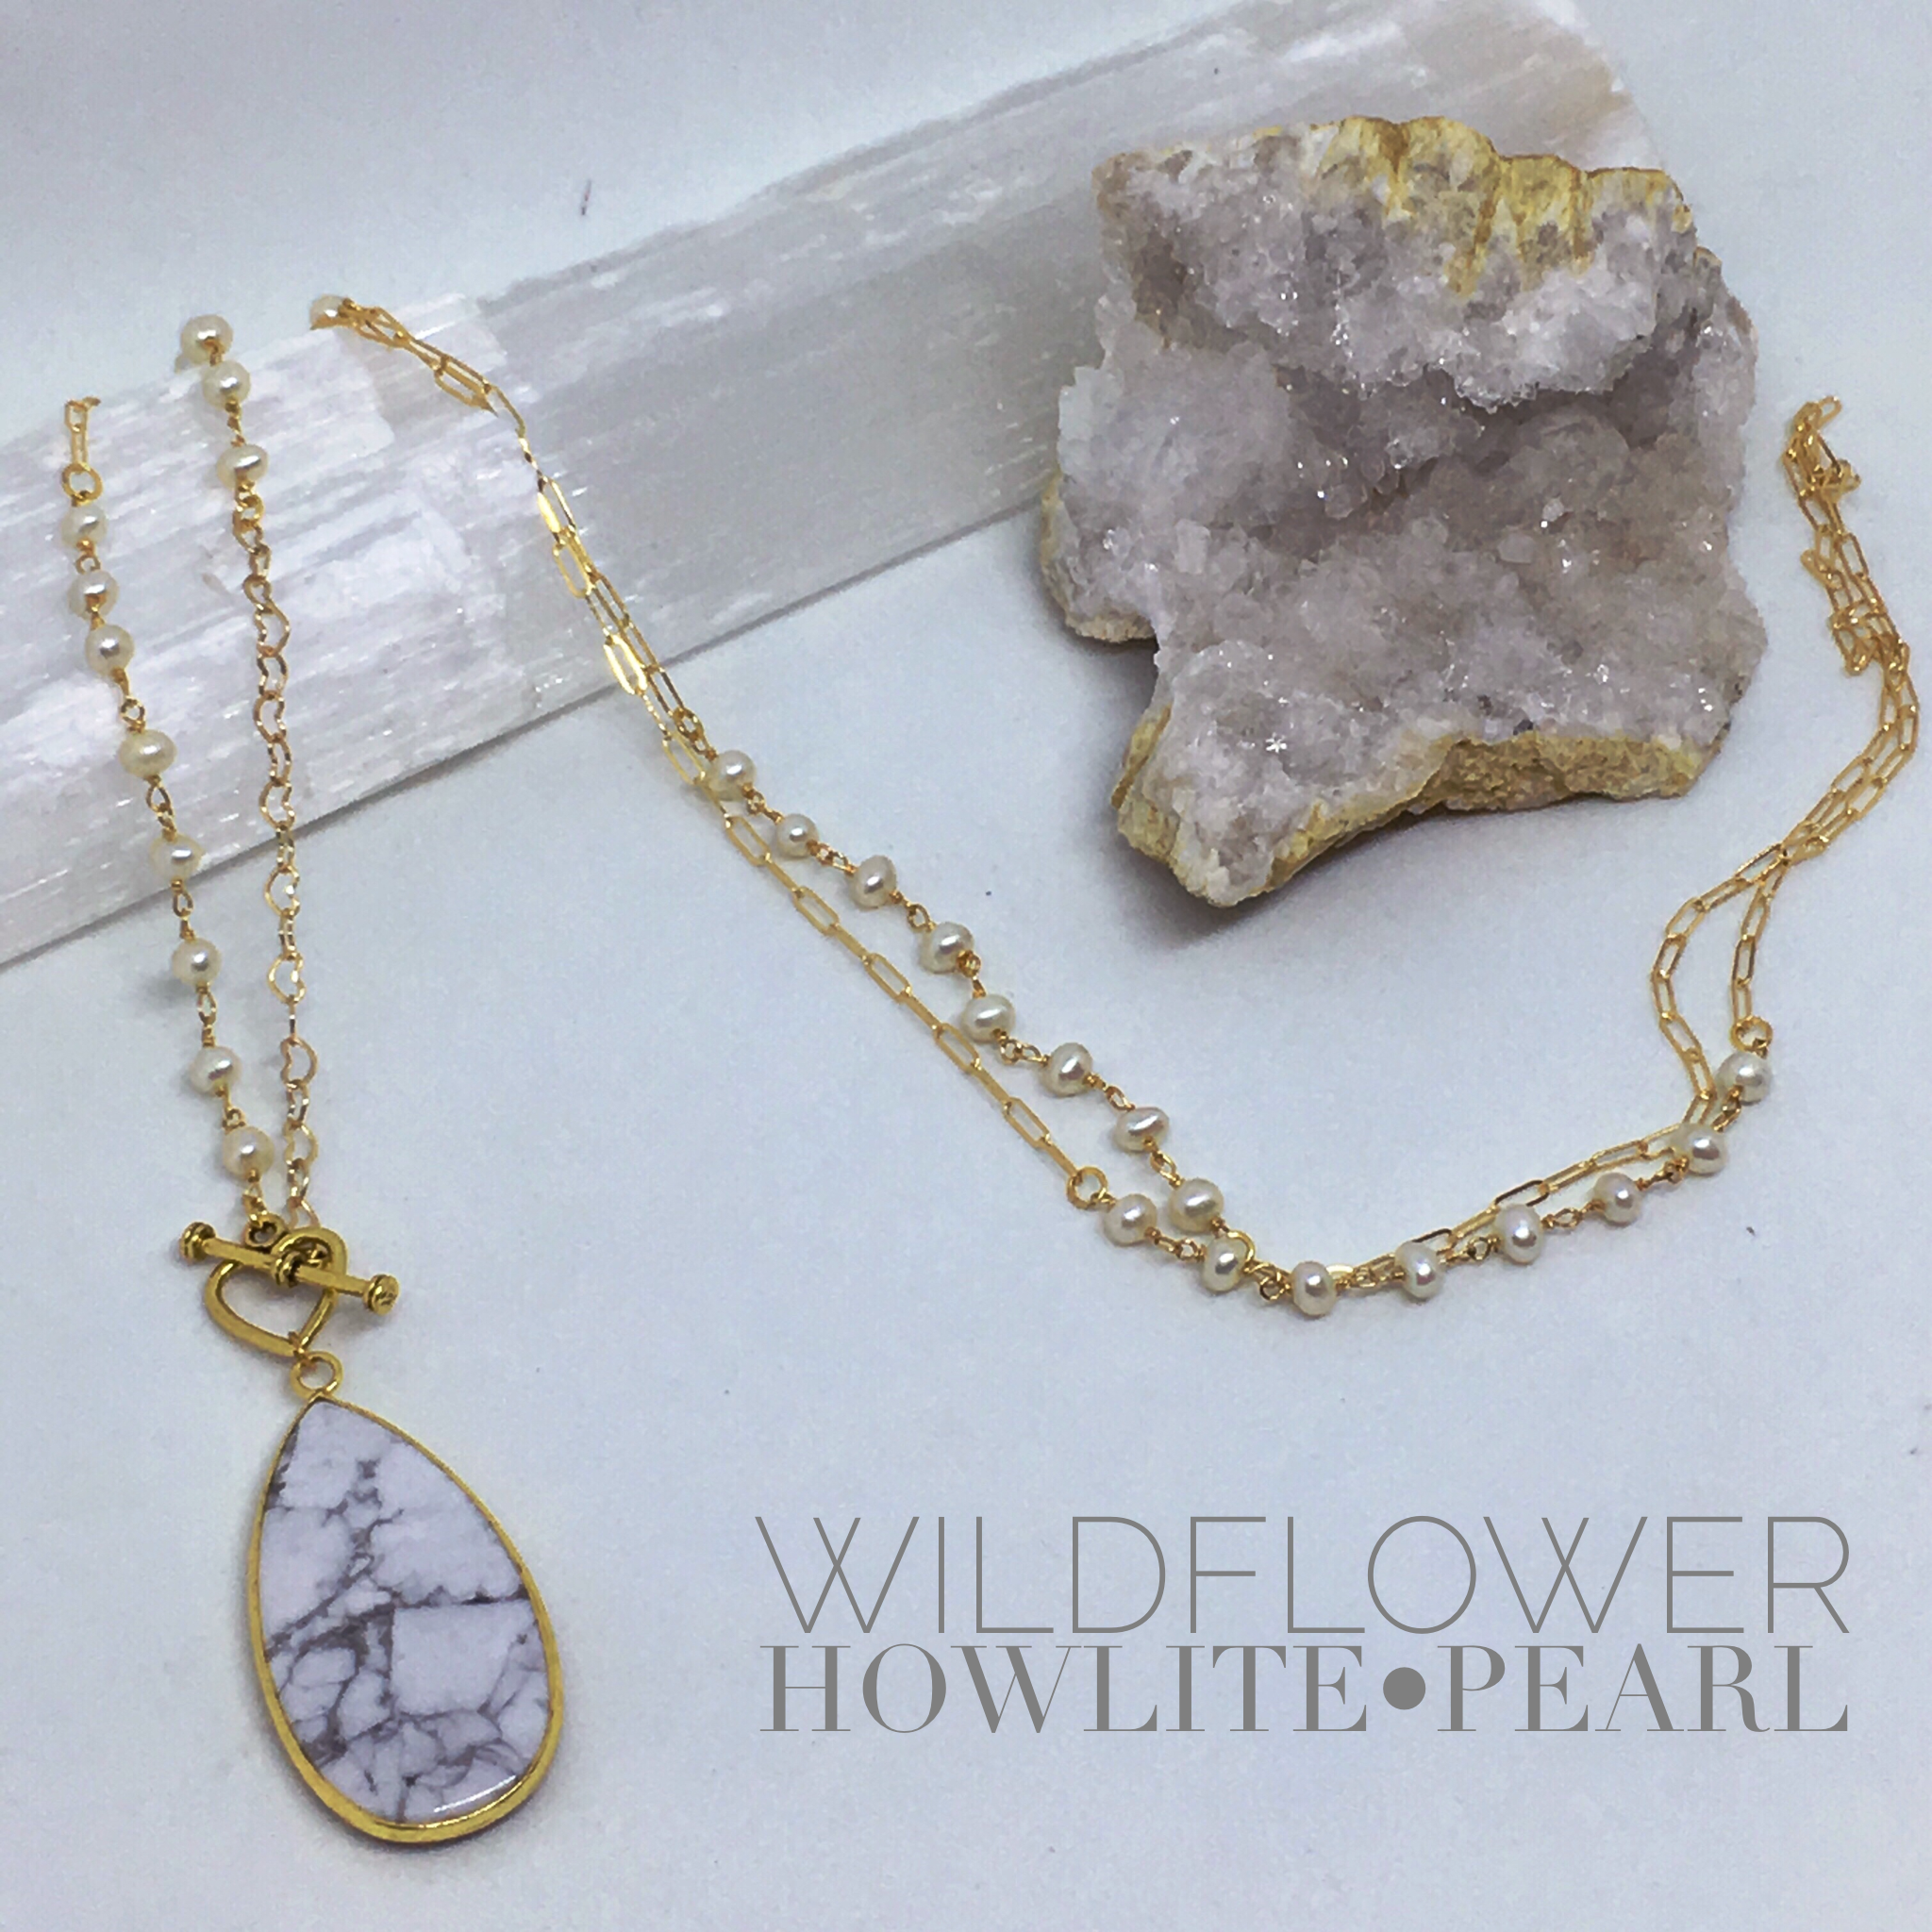 wildflower howlite.png